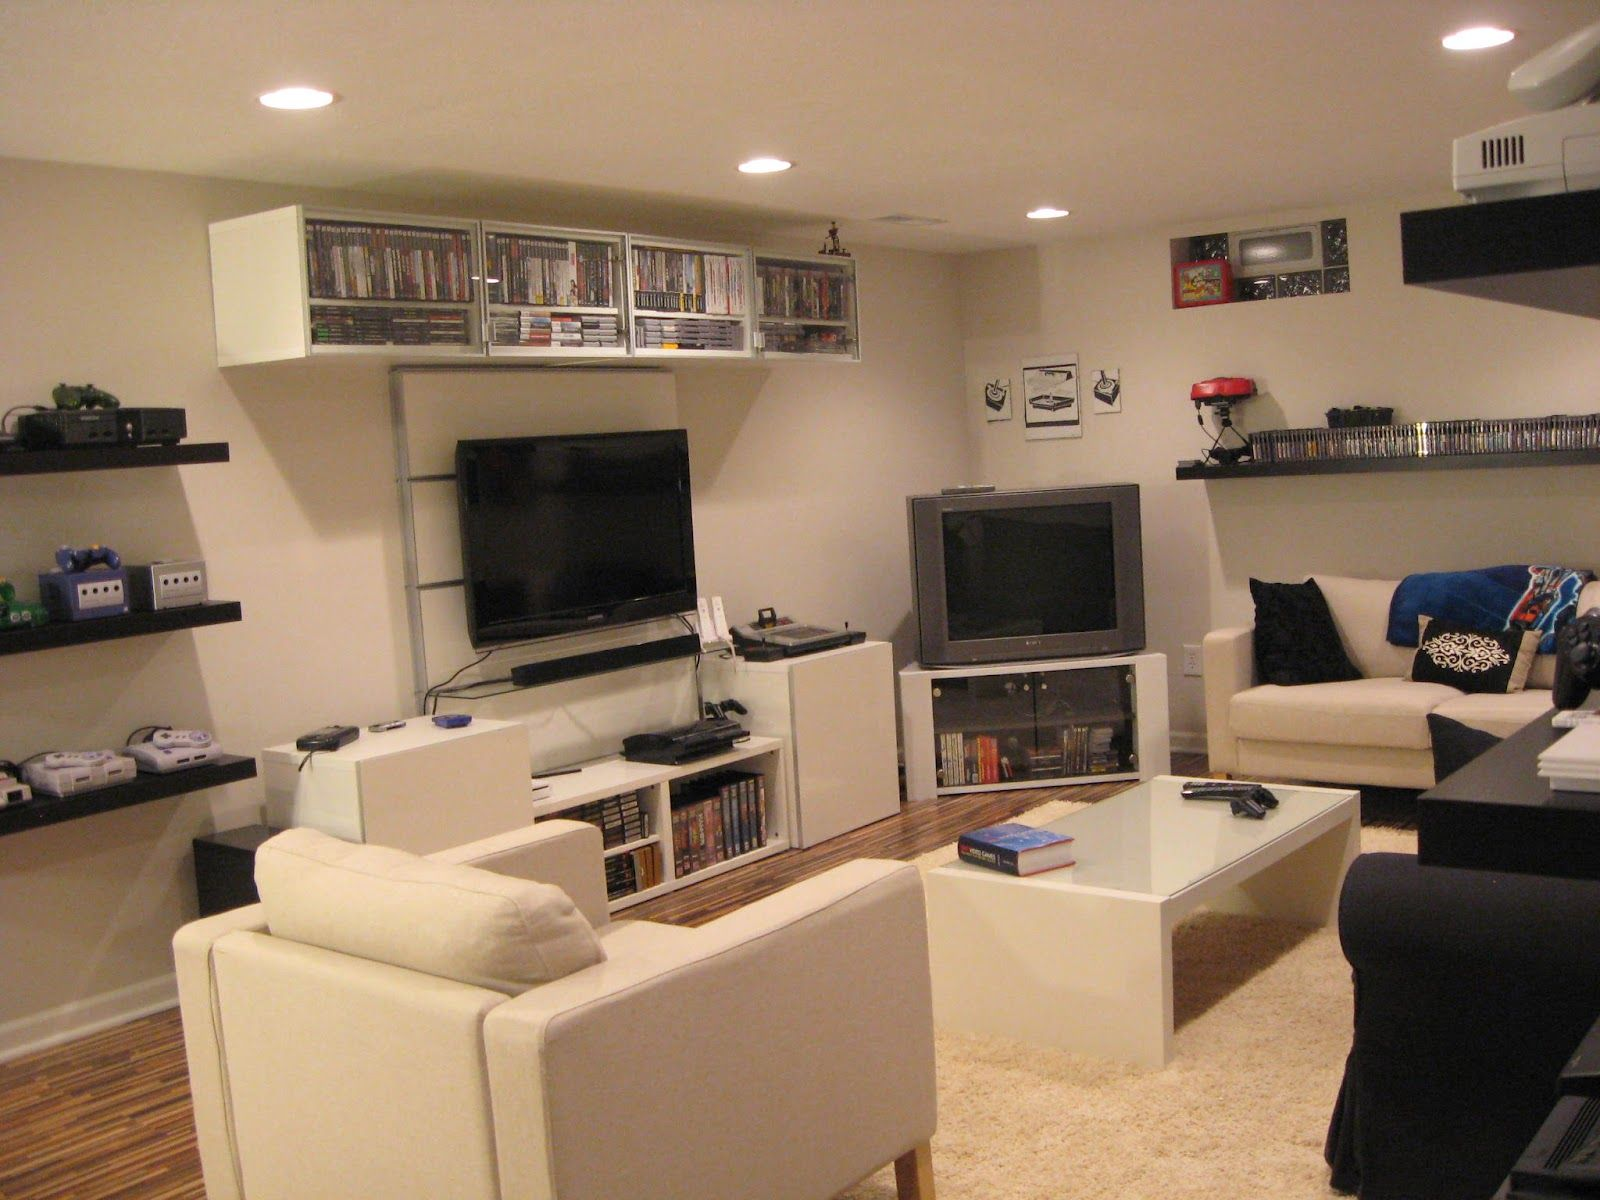 Most Popular Video Game Room Ideas Feel the Awesome Game Play